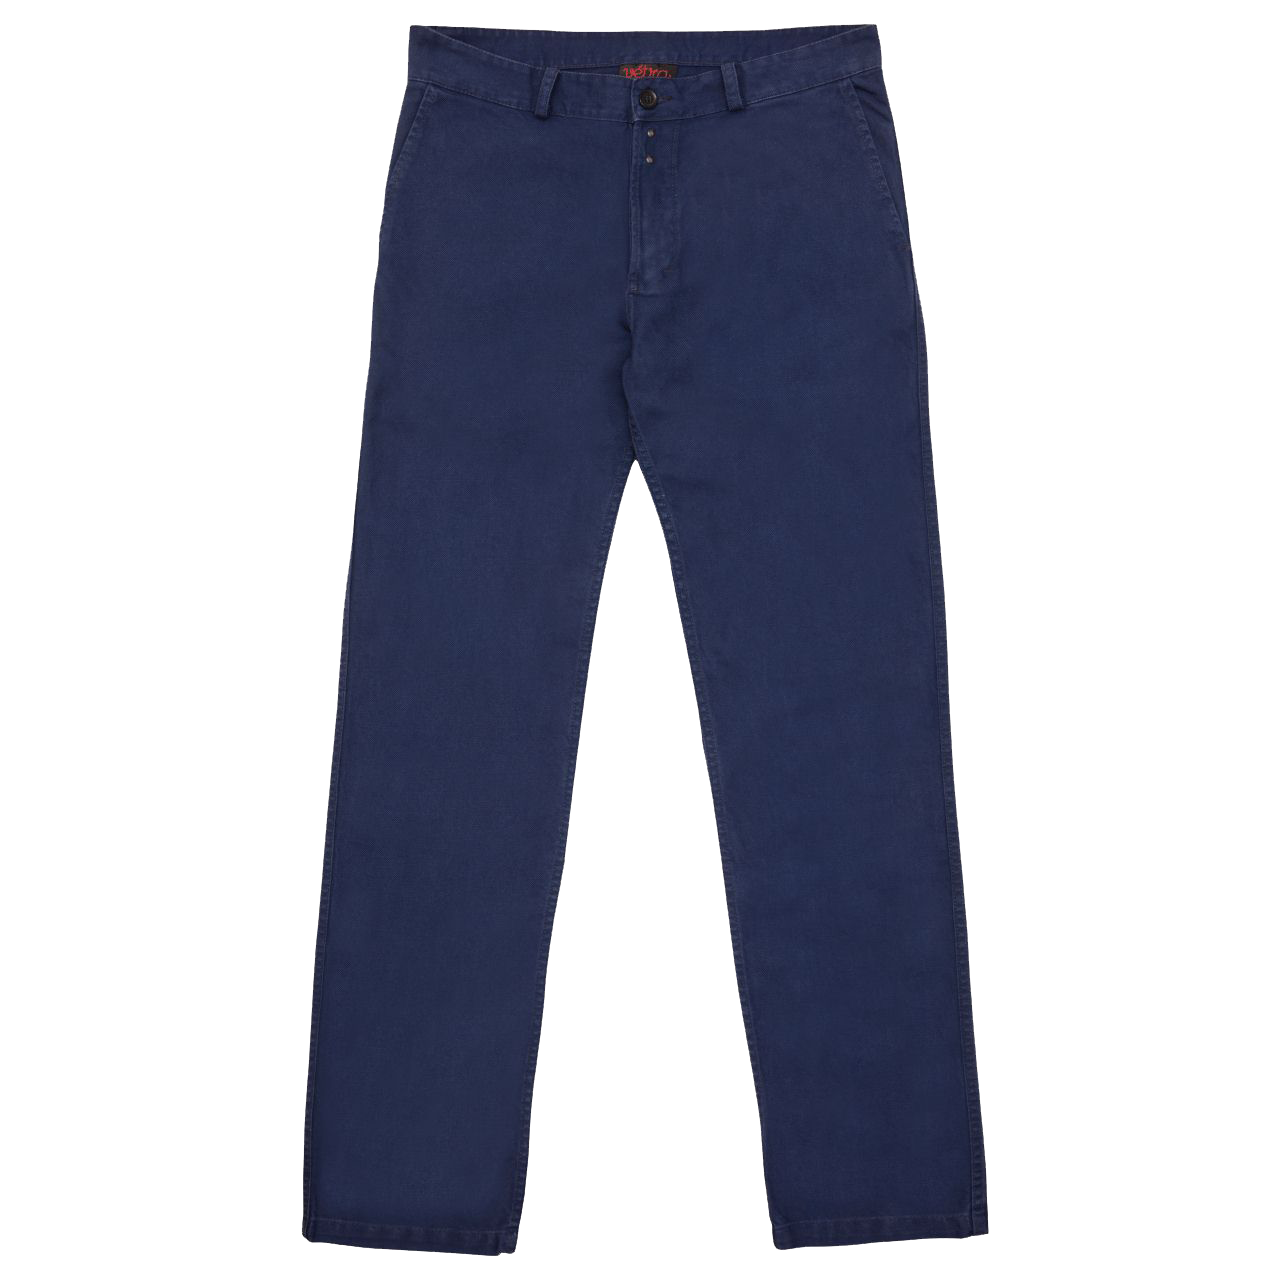 Download Trouser PNG Picture.